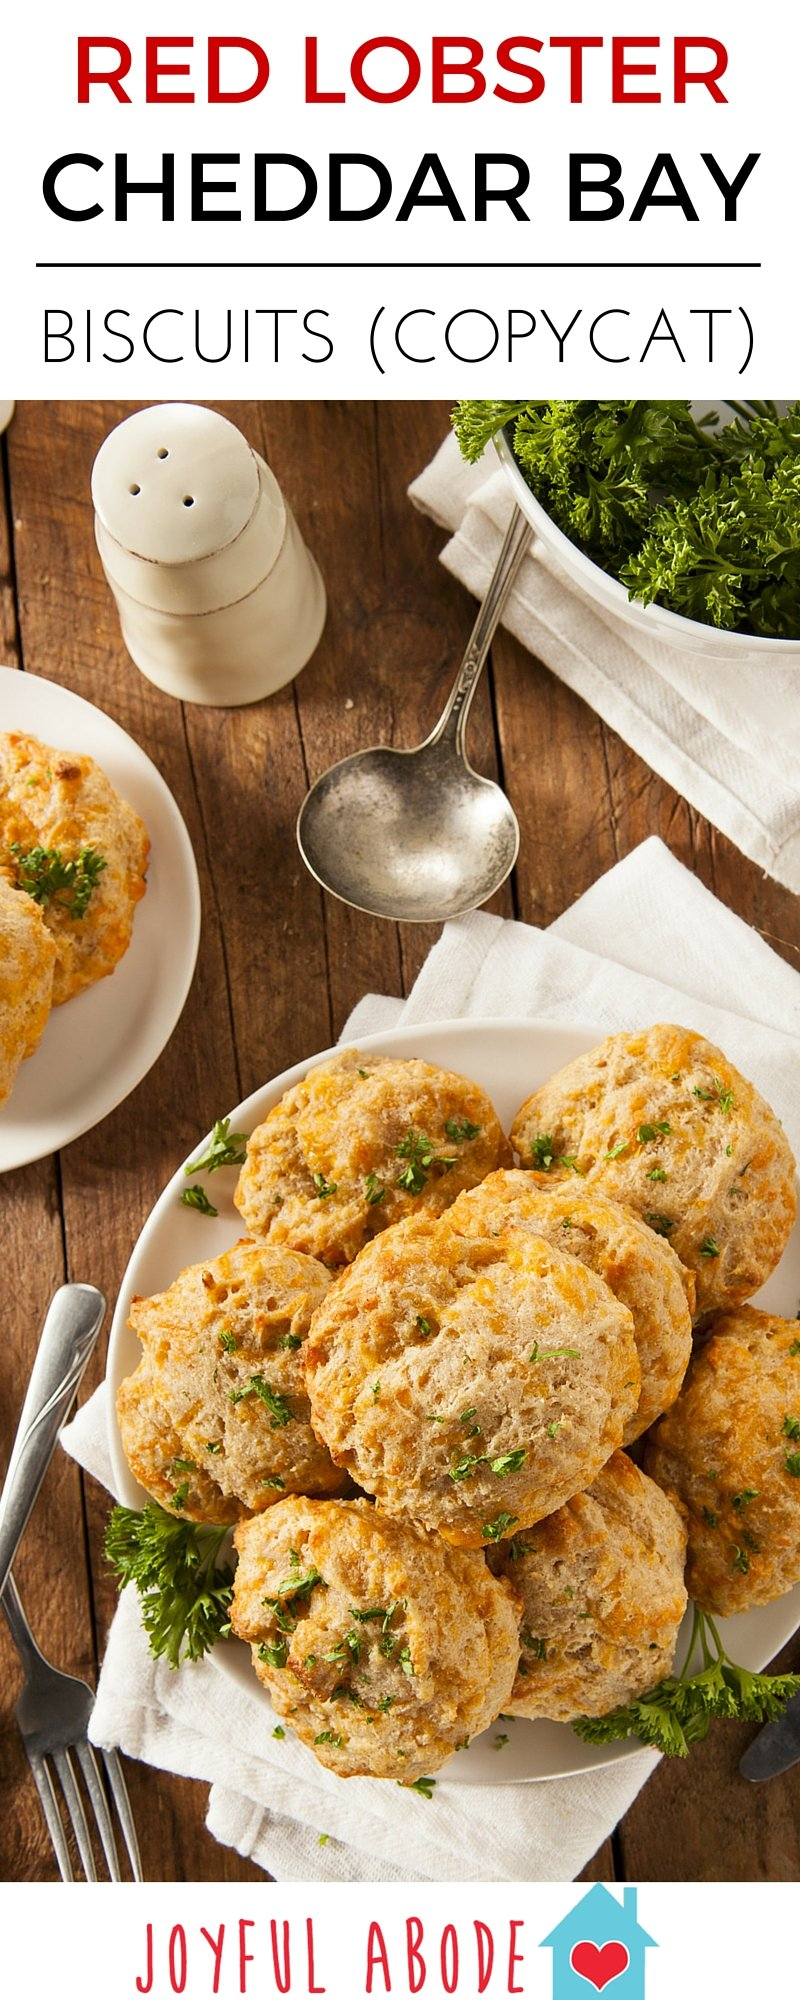 Easy copycat Red Lobster Cheddar Bay biscuits recipe with step by step photos